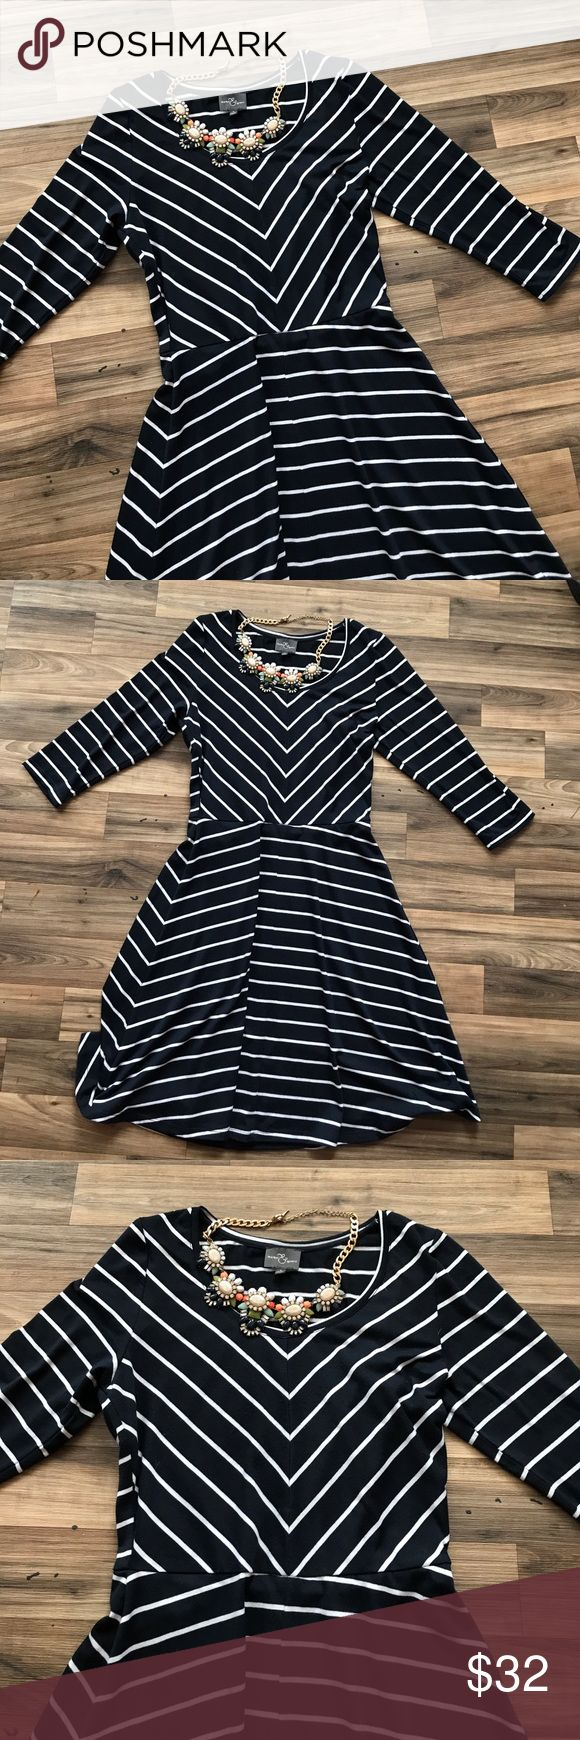 MARKET & SPRUCE small navy and white dress Adorable navy and white stripe Market & Spruce dress. Falls right at knee for me (5'5) 3/4 sleeves. Worn once  market & spruce  Dresses